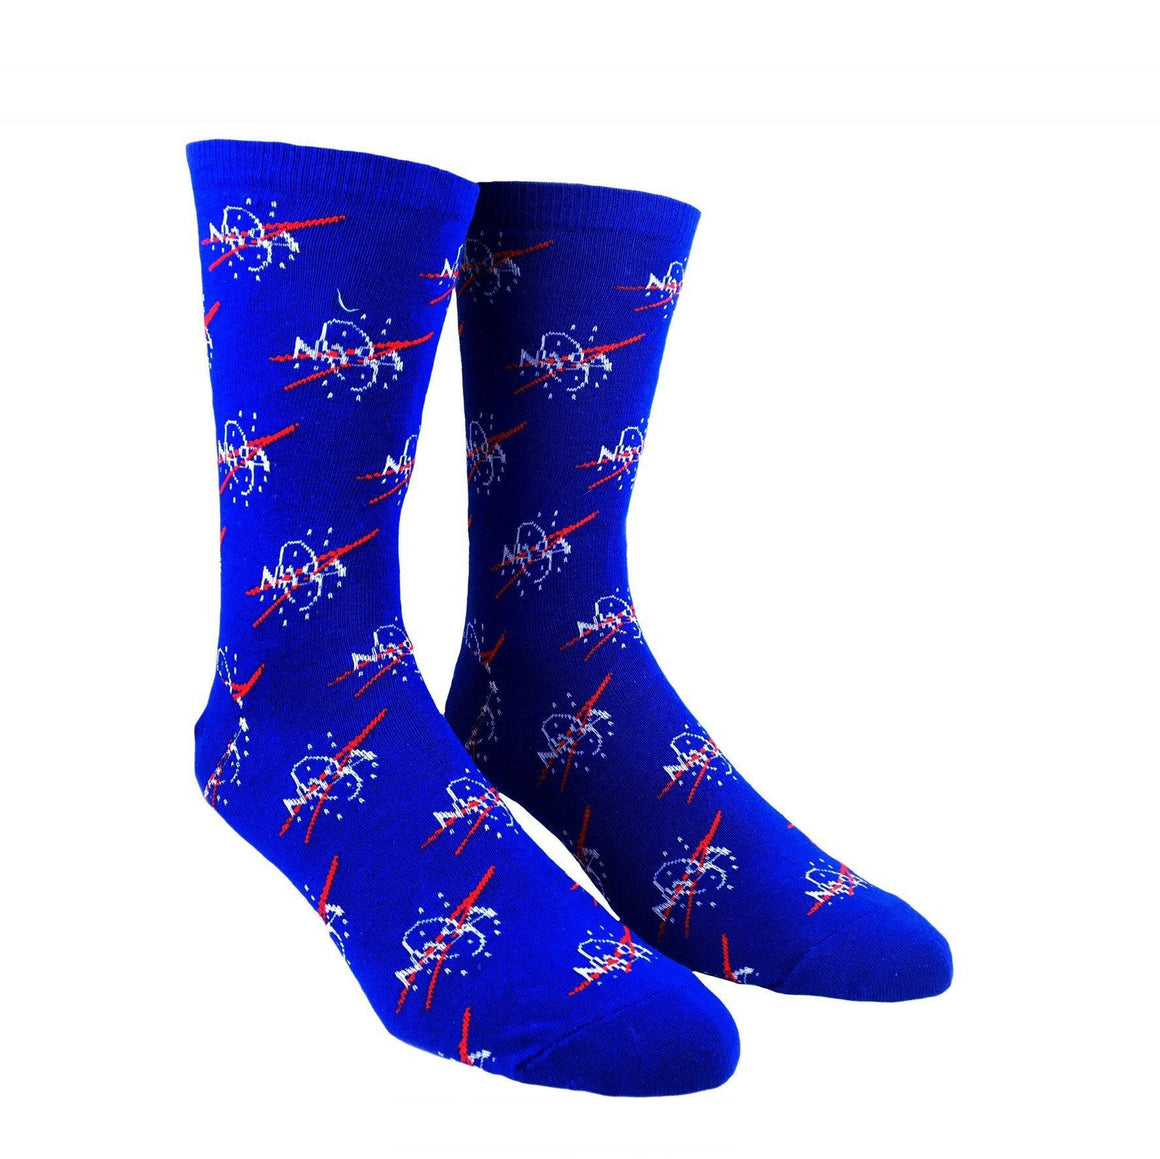 Socks - NASA Logo Repeat Socks